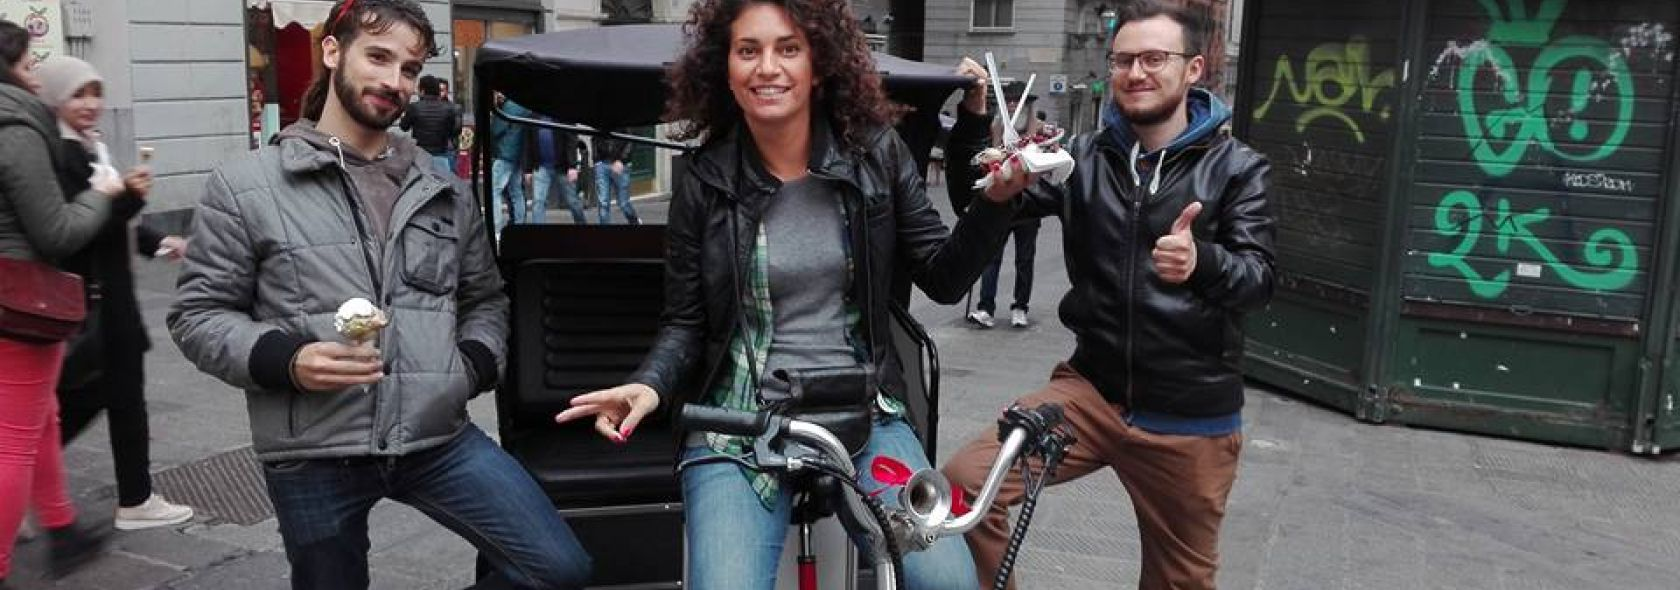 TreeCycle - The Old Town of Genoa by electric pedicab: Via San Lorenzo